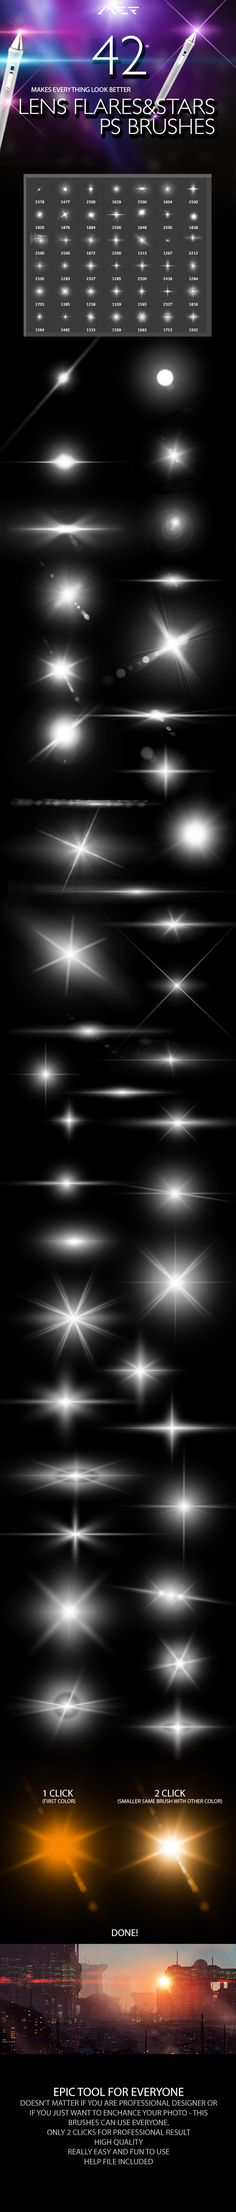 42 Lens Flares And Stars Photoshop Brushes by ArtistMEF  PSP can use the same brushes as Photoshop.